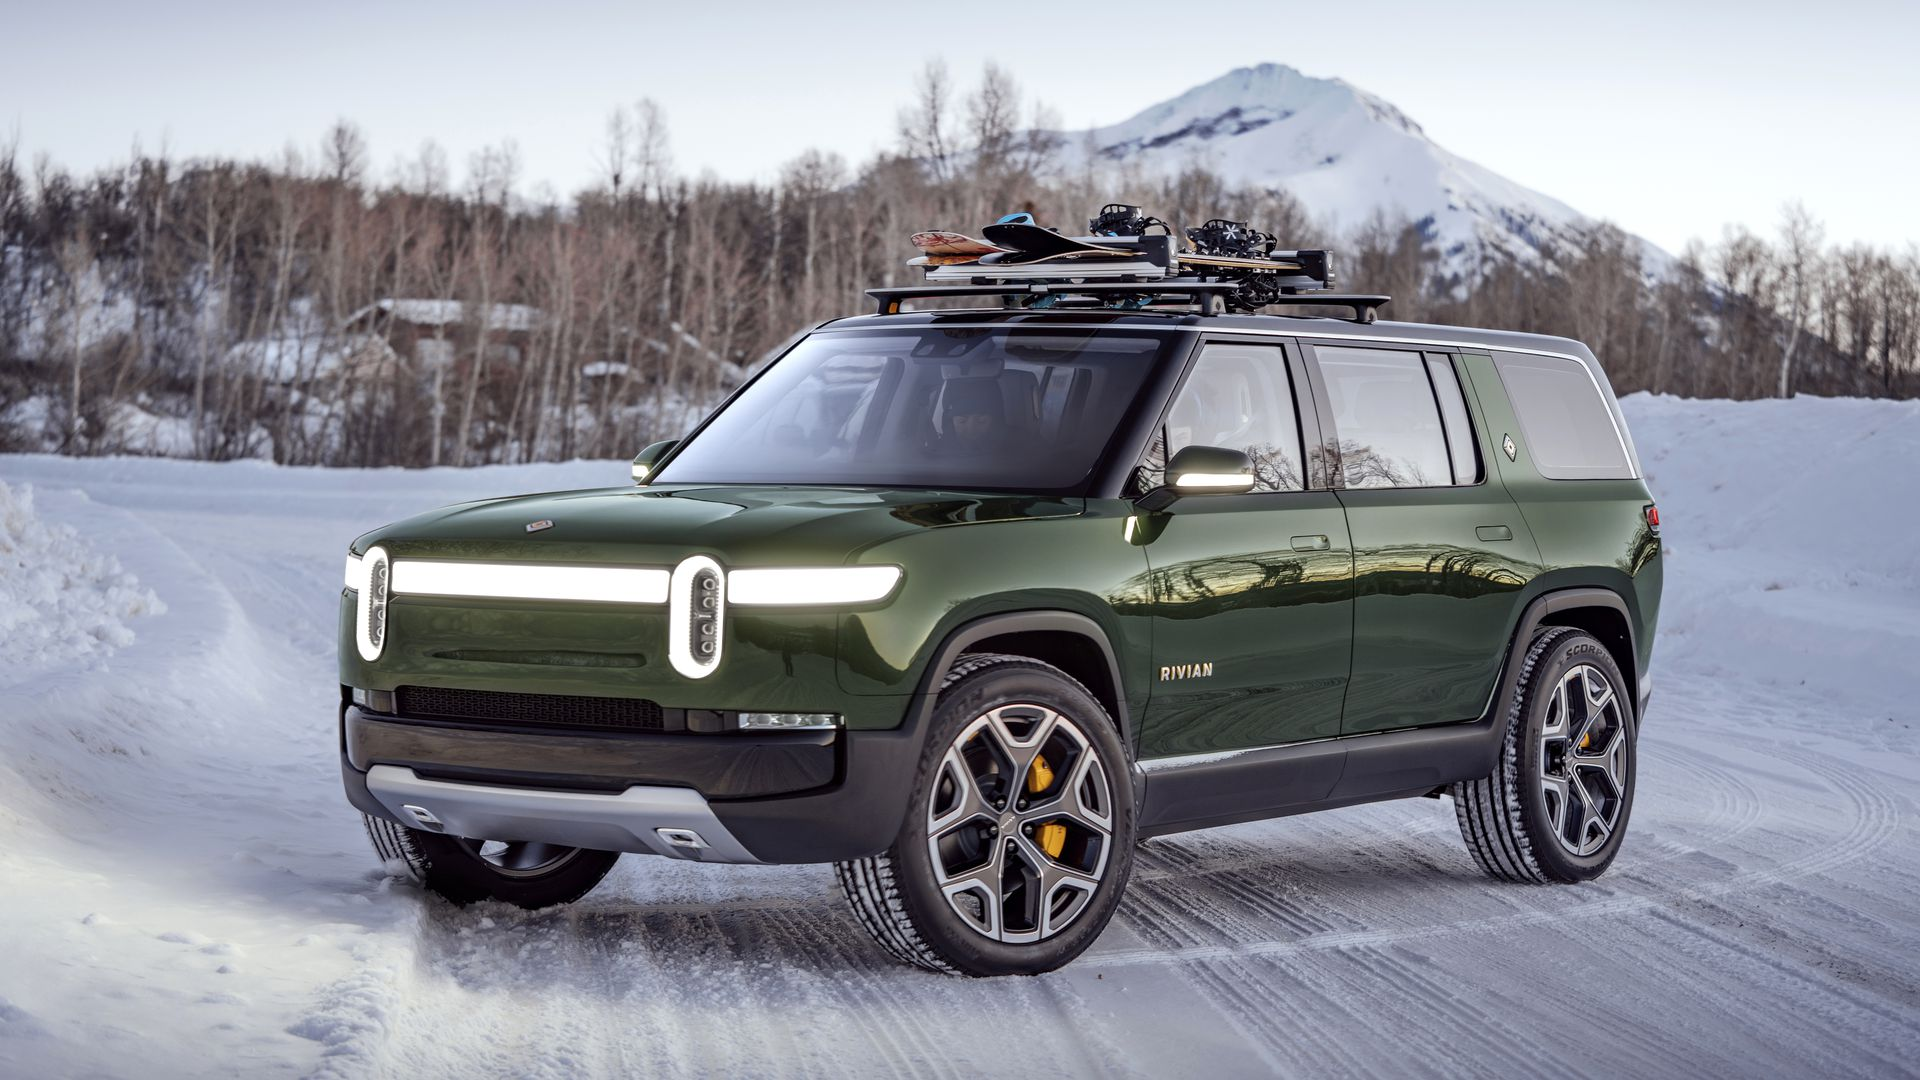 Image of green Rivian R2S sport utility in a snowy environment.